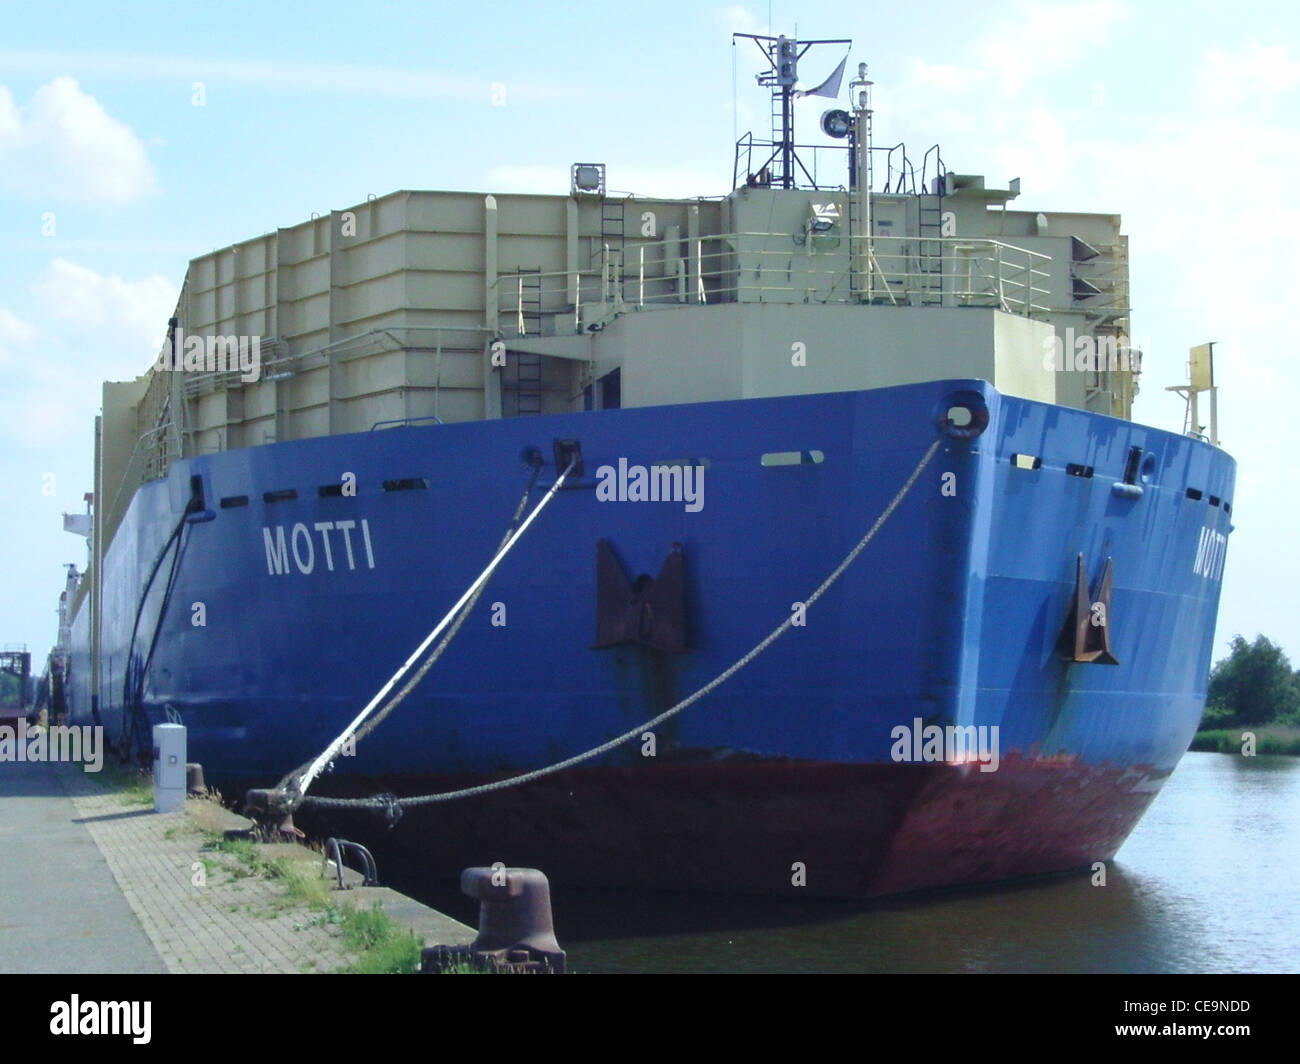 barge without propulsion Motti in Bremerhaven - Stock Image